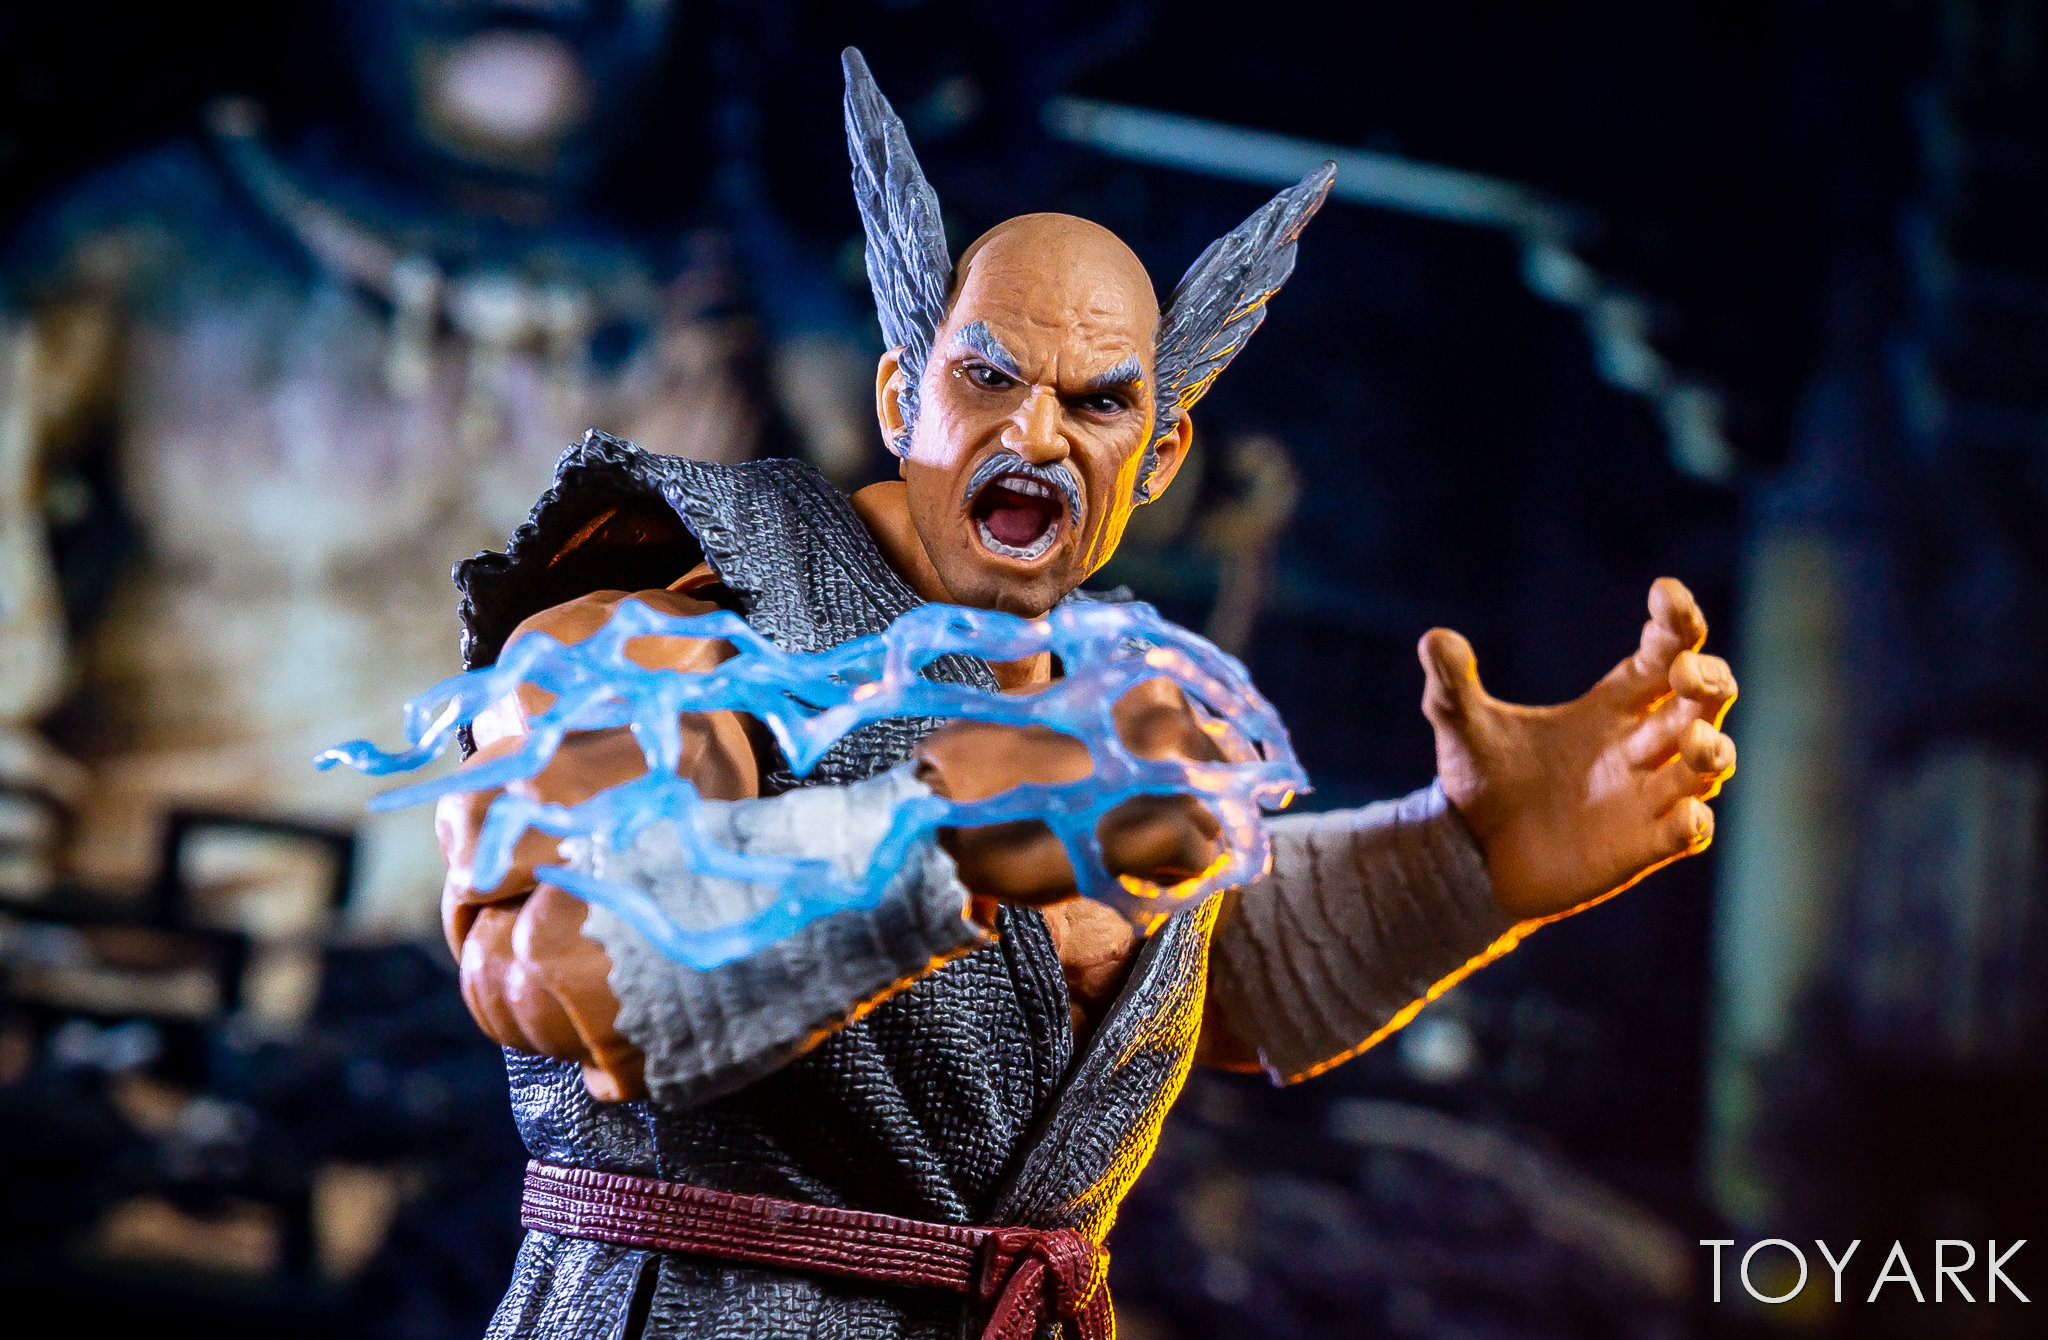 https://news.toyark.com/wp-content/uploads/sites/4/2018/05/Storm-Heihachi-Figure-024.jpg